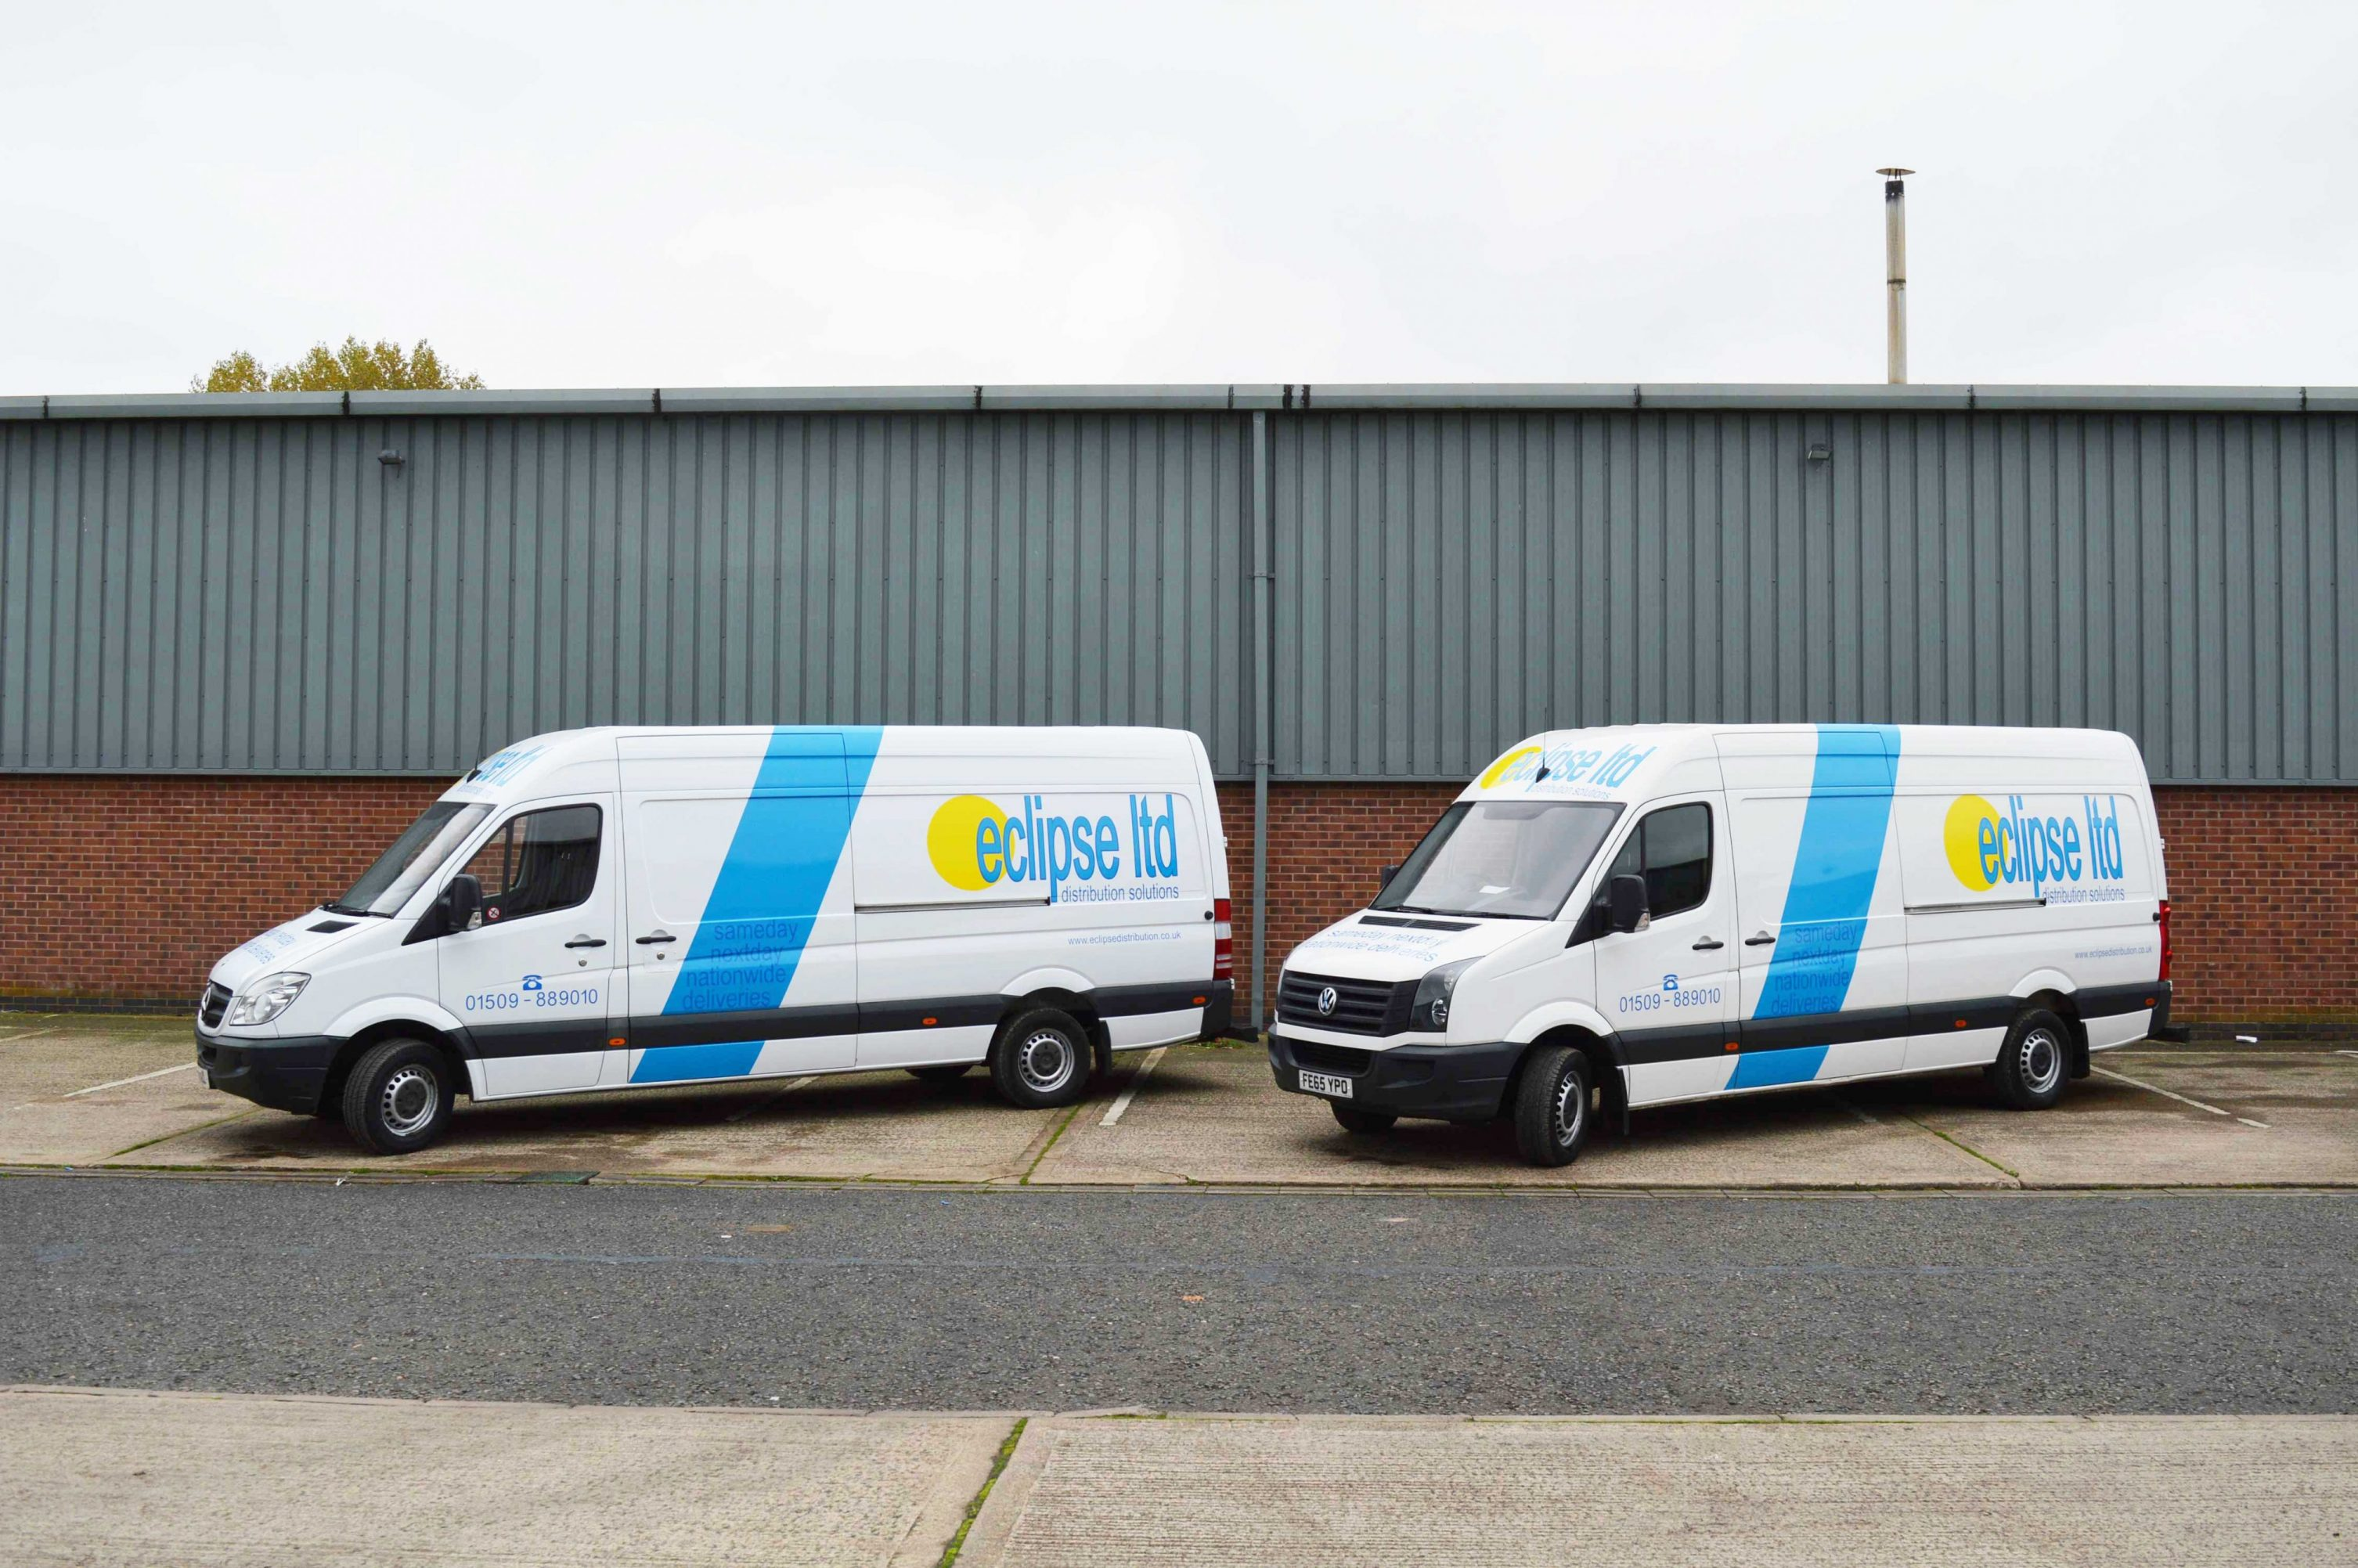 An image of the Side View of two Eclipse Distribution Solutions Ltd van used for nationwide delivery.